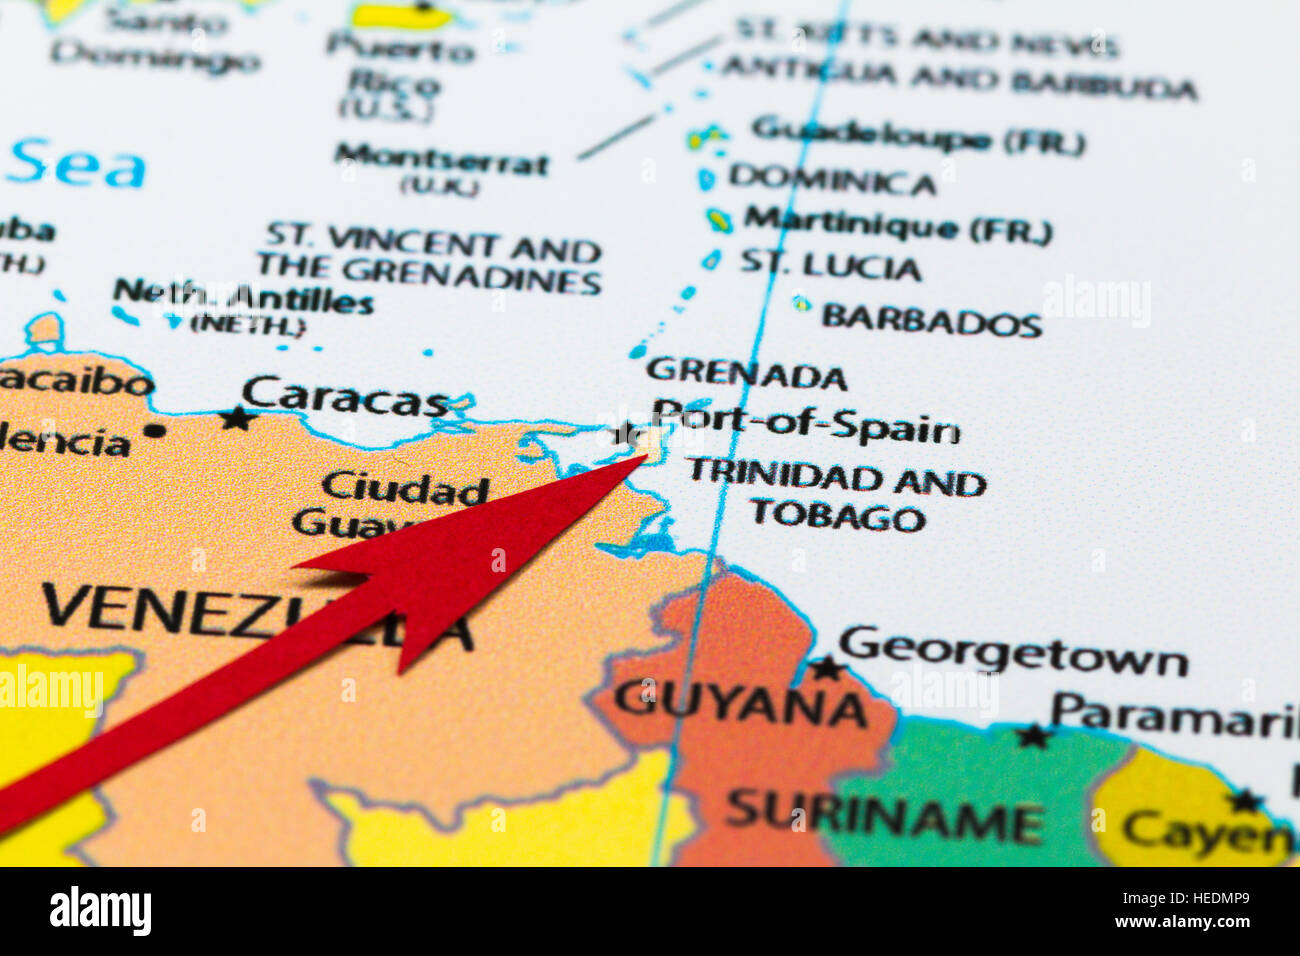 Red arrow pointing Trinidad and Tobago on the map of South America